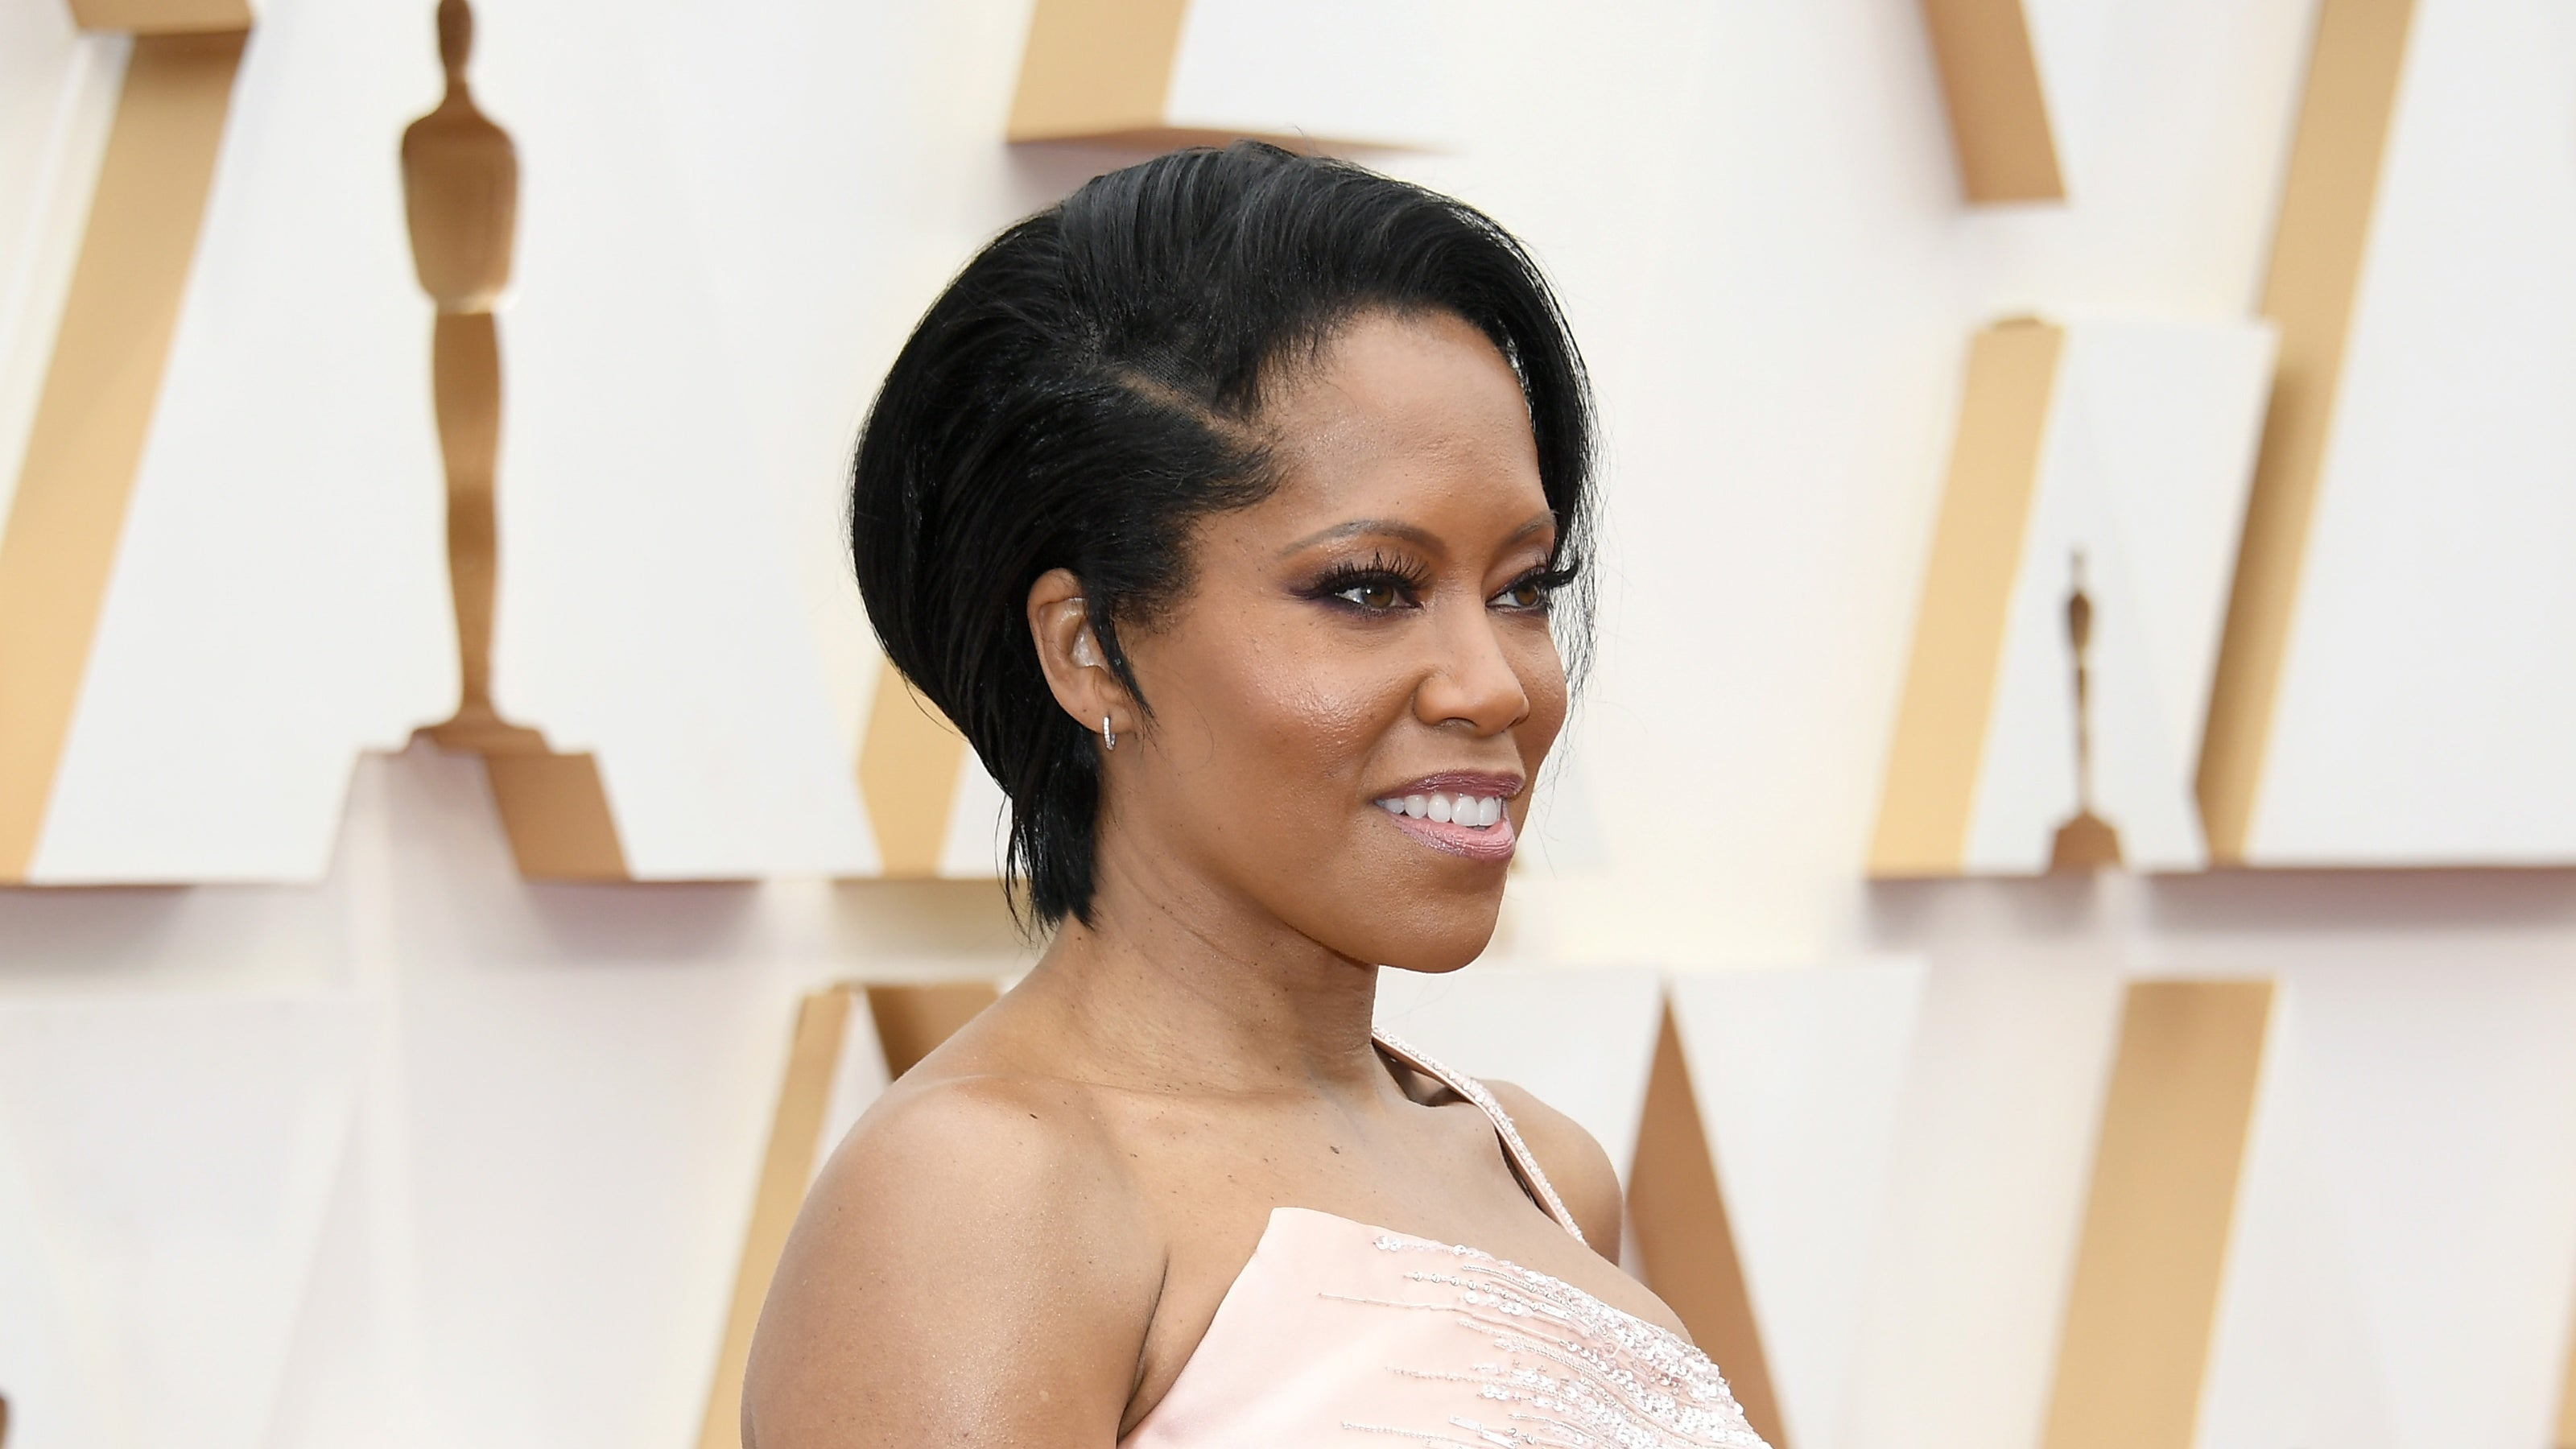 Regina Kings Stuns In Versace At The 2020 Oscars Essence